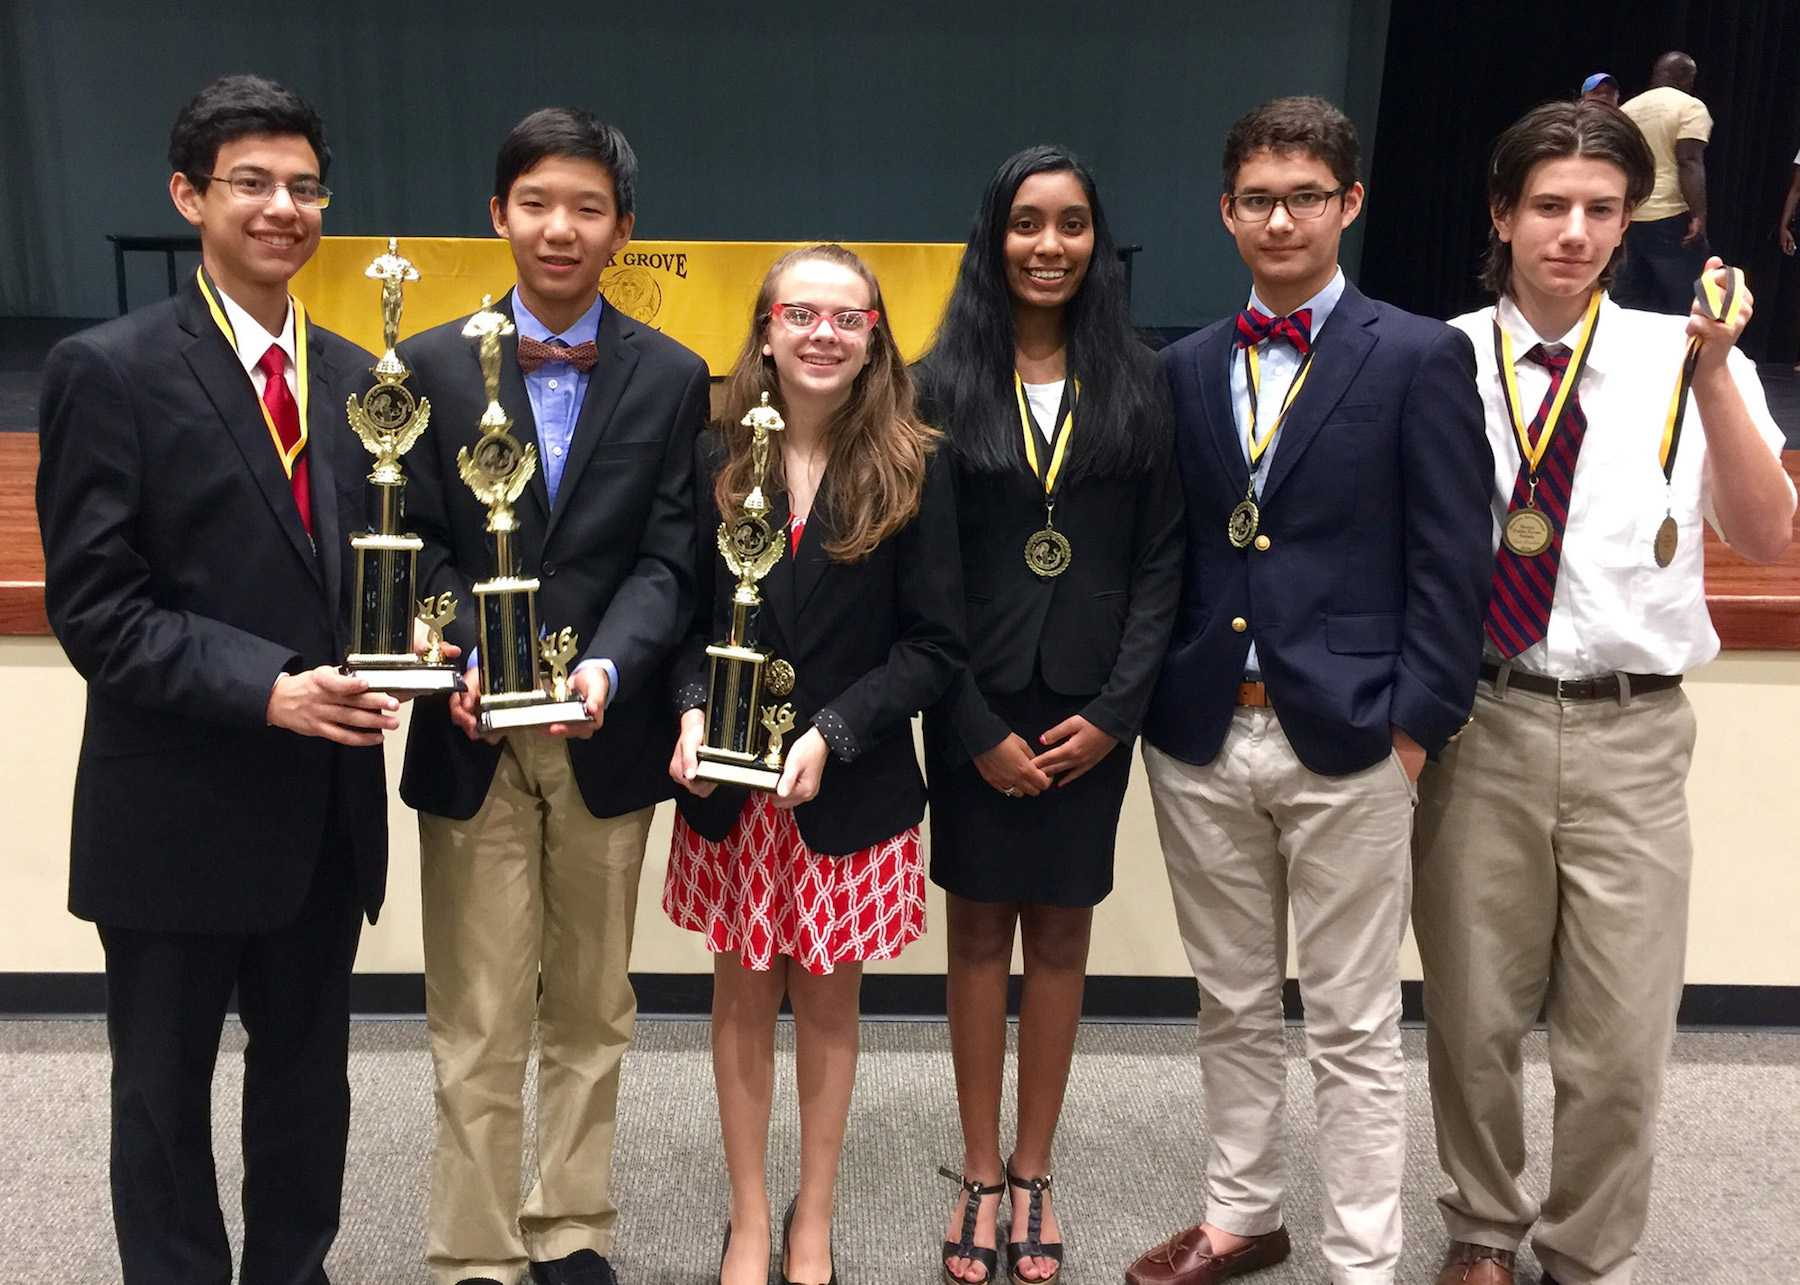 (from left to right) Sophomore Marawan Elghory, freshman Edward Hu, sophomore Edith Marie Green, junior Akshaya Vijaysankar, senior Dylan Howard, and freshman Toby O'Donnell pose with their awards at the first debate tournament of the school year.